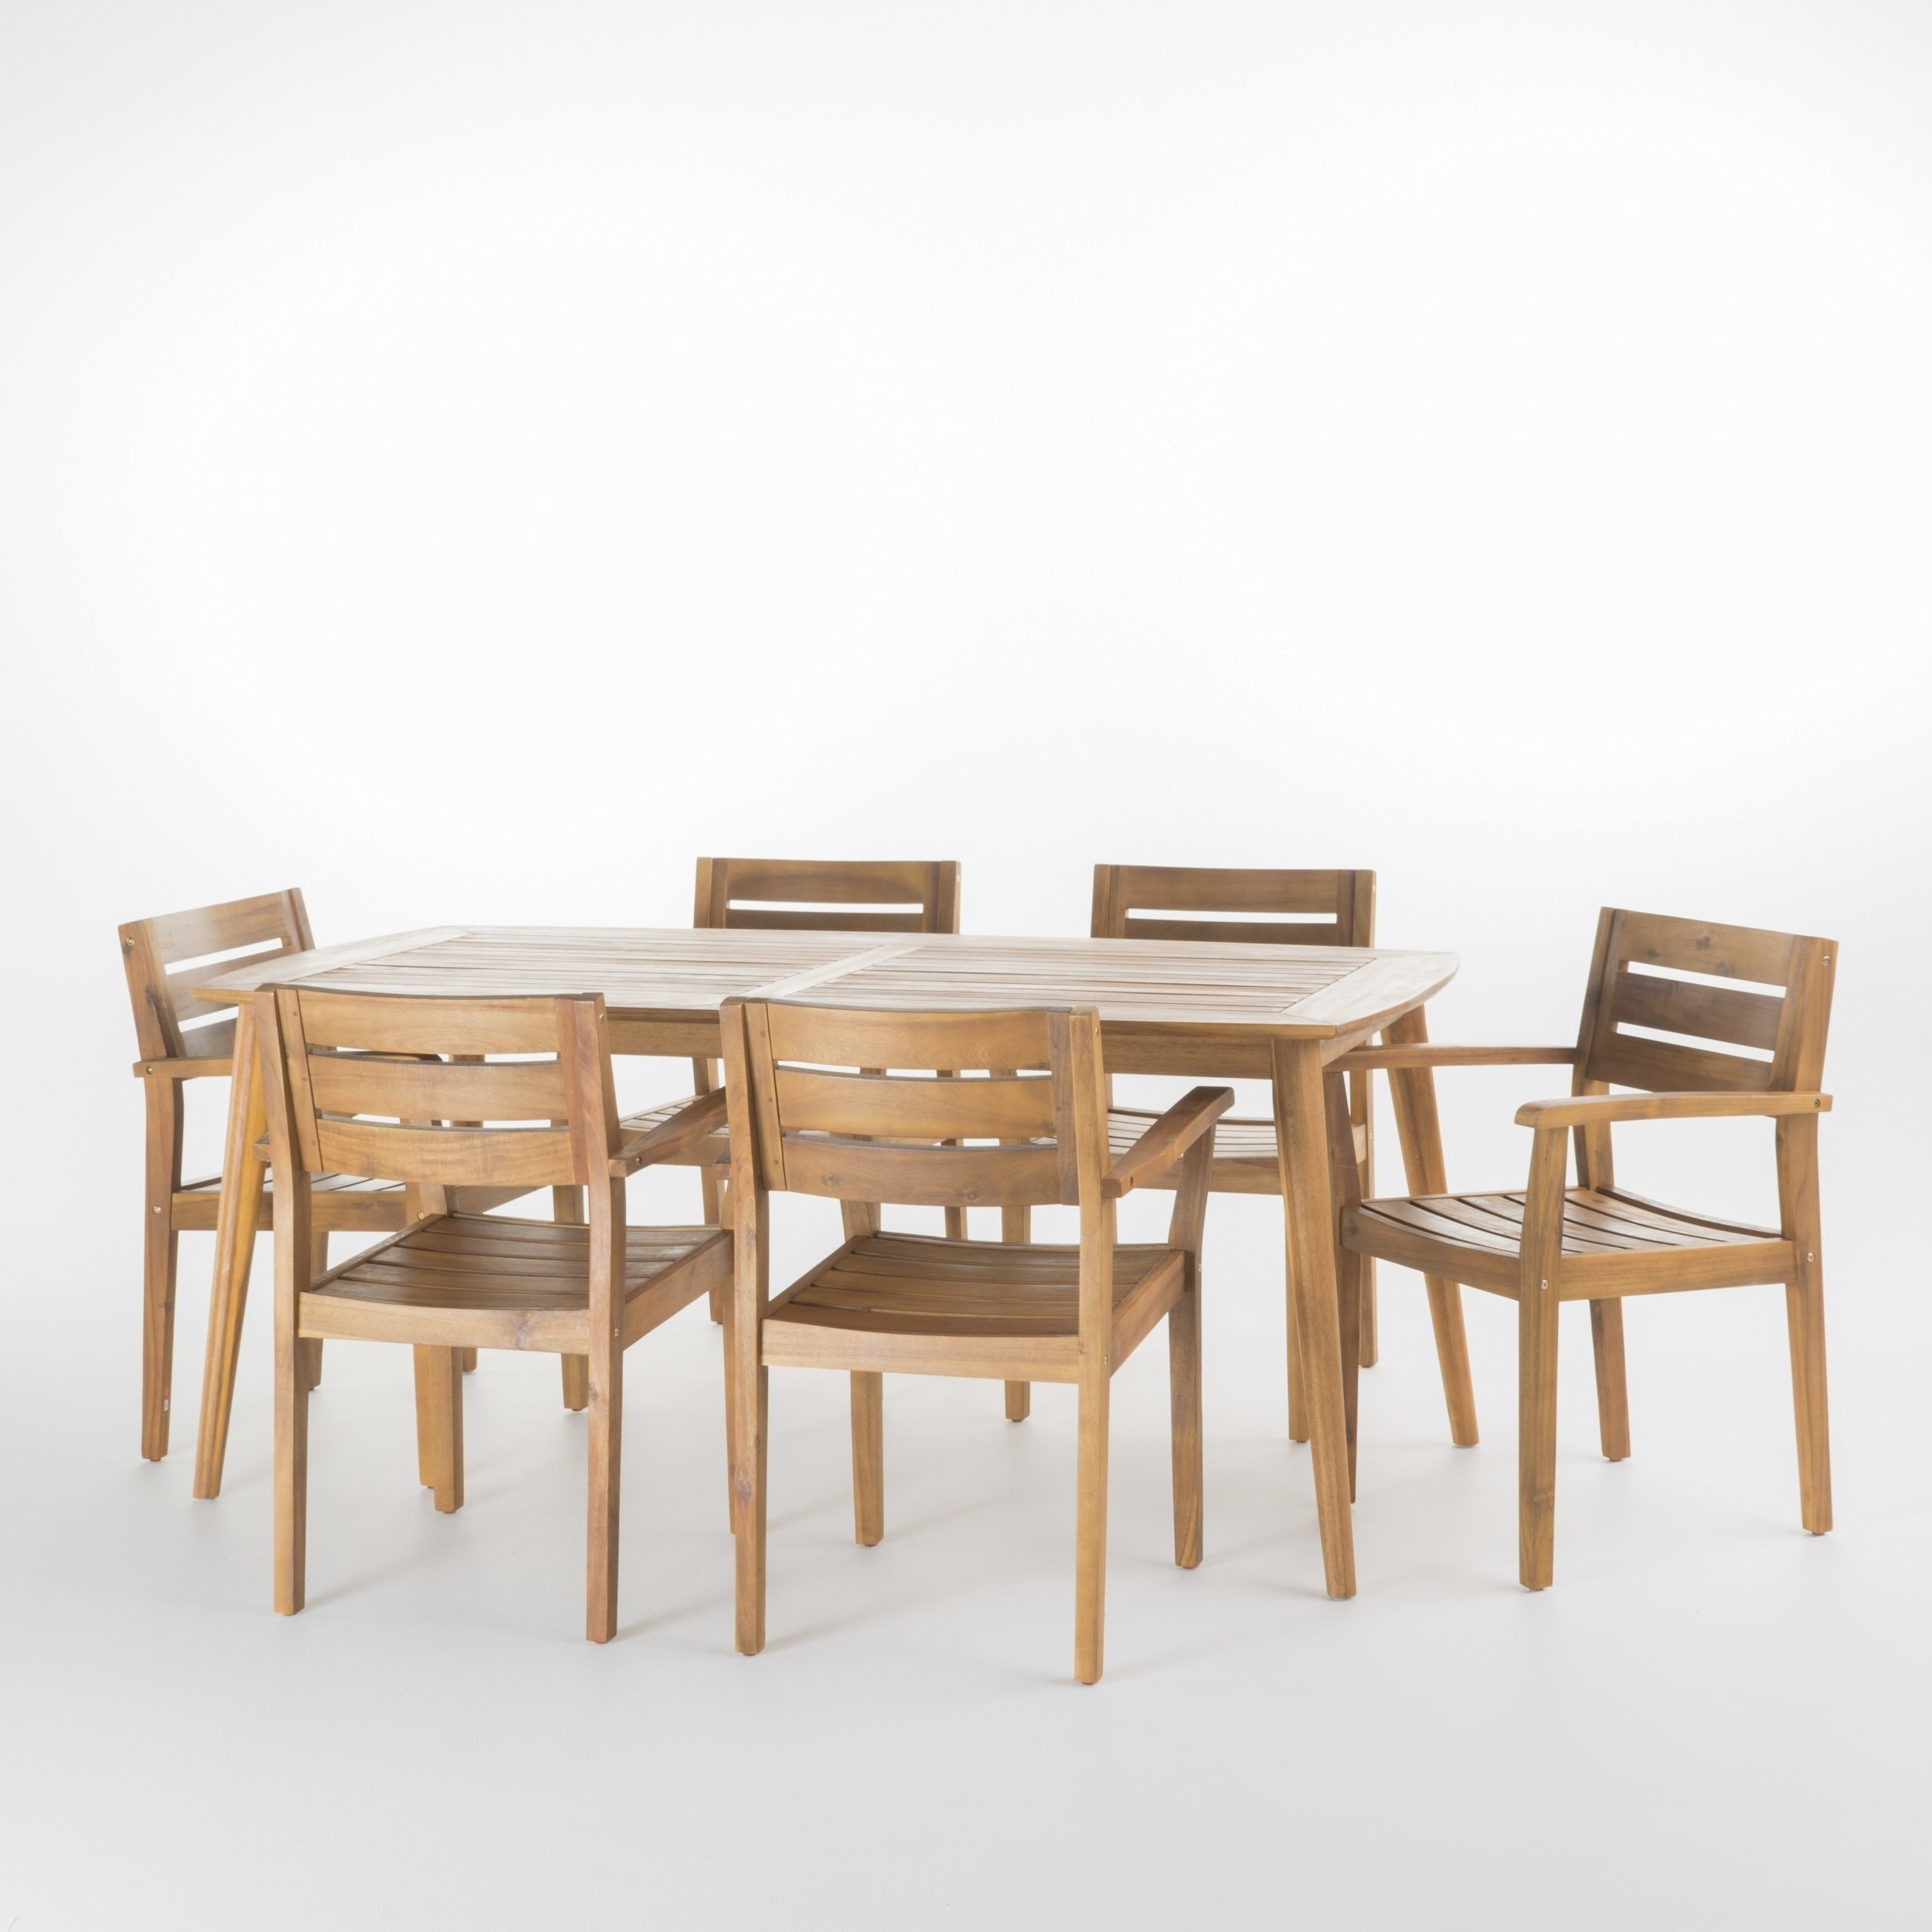 Shop Stamford Outdoor 7 Piece Rectangle Acacia Wood Dining Set Intended For Most Recent Laurent 7 Piece Rectangle Dining Sets With Wood And Host Chairs (View 20 of 25)